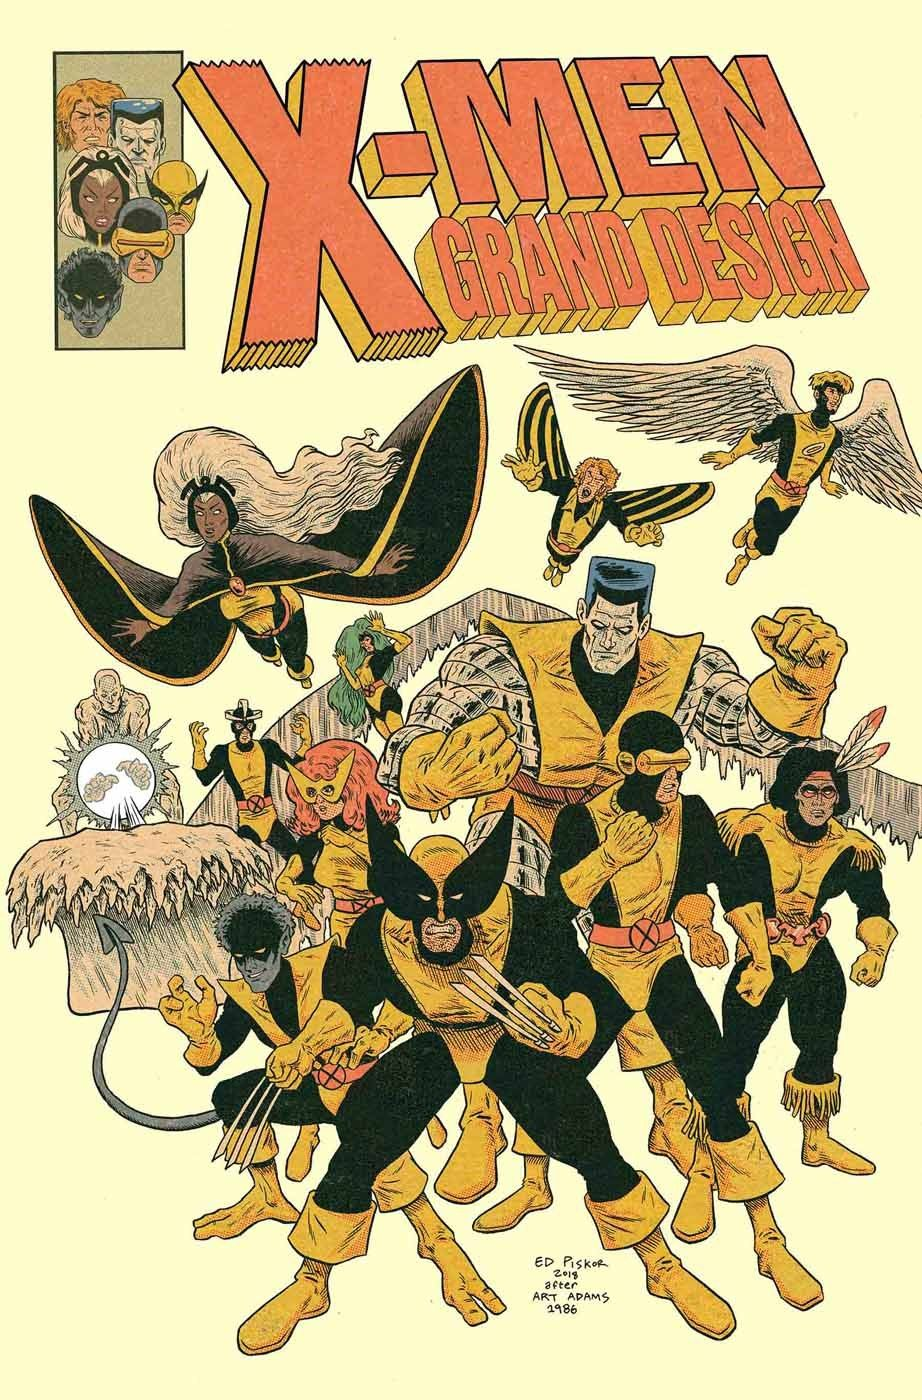 X Men Grand Design Second Genesis 1 Cover By Ed Piskor After Arthur Adams Comics Marvel Comics Art Vintage Comics